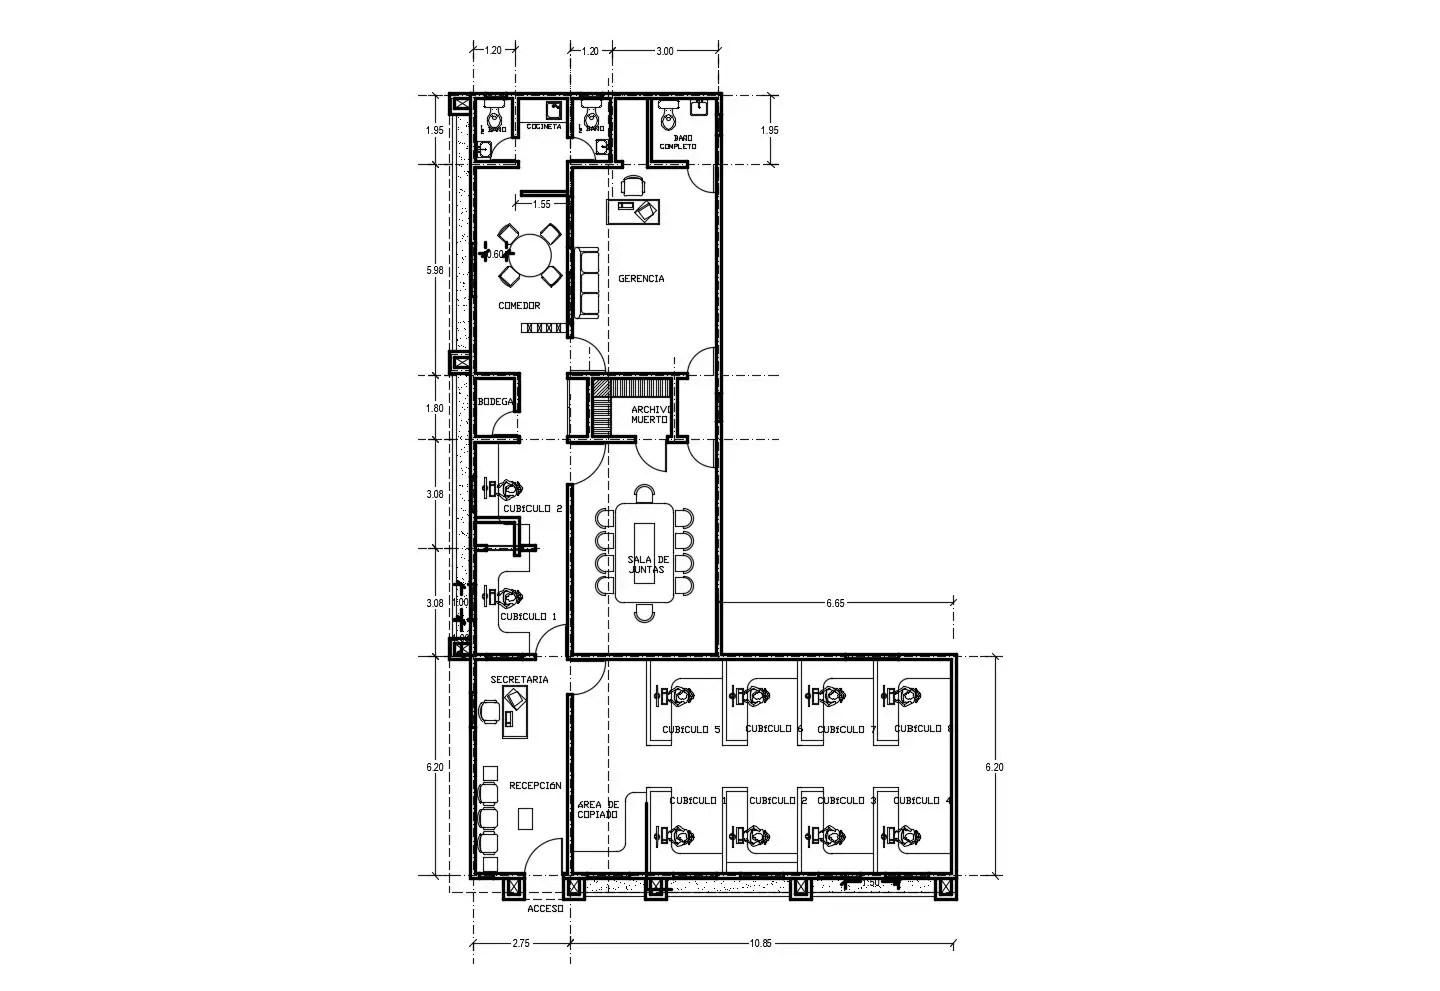 Autocad drawing of office design with detail dimension